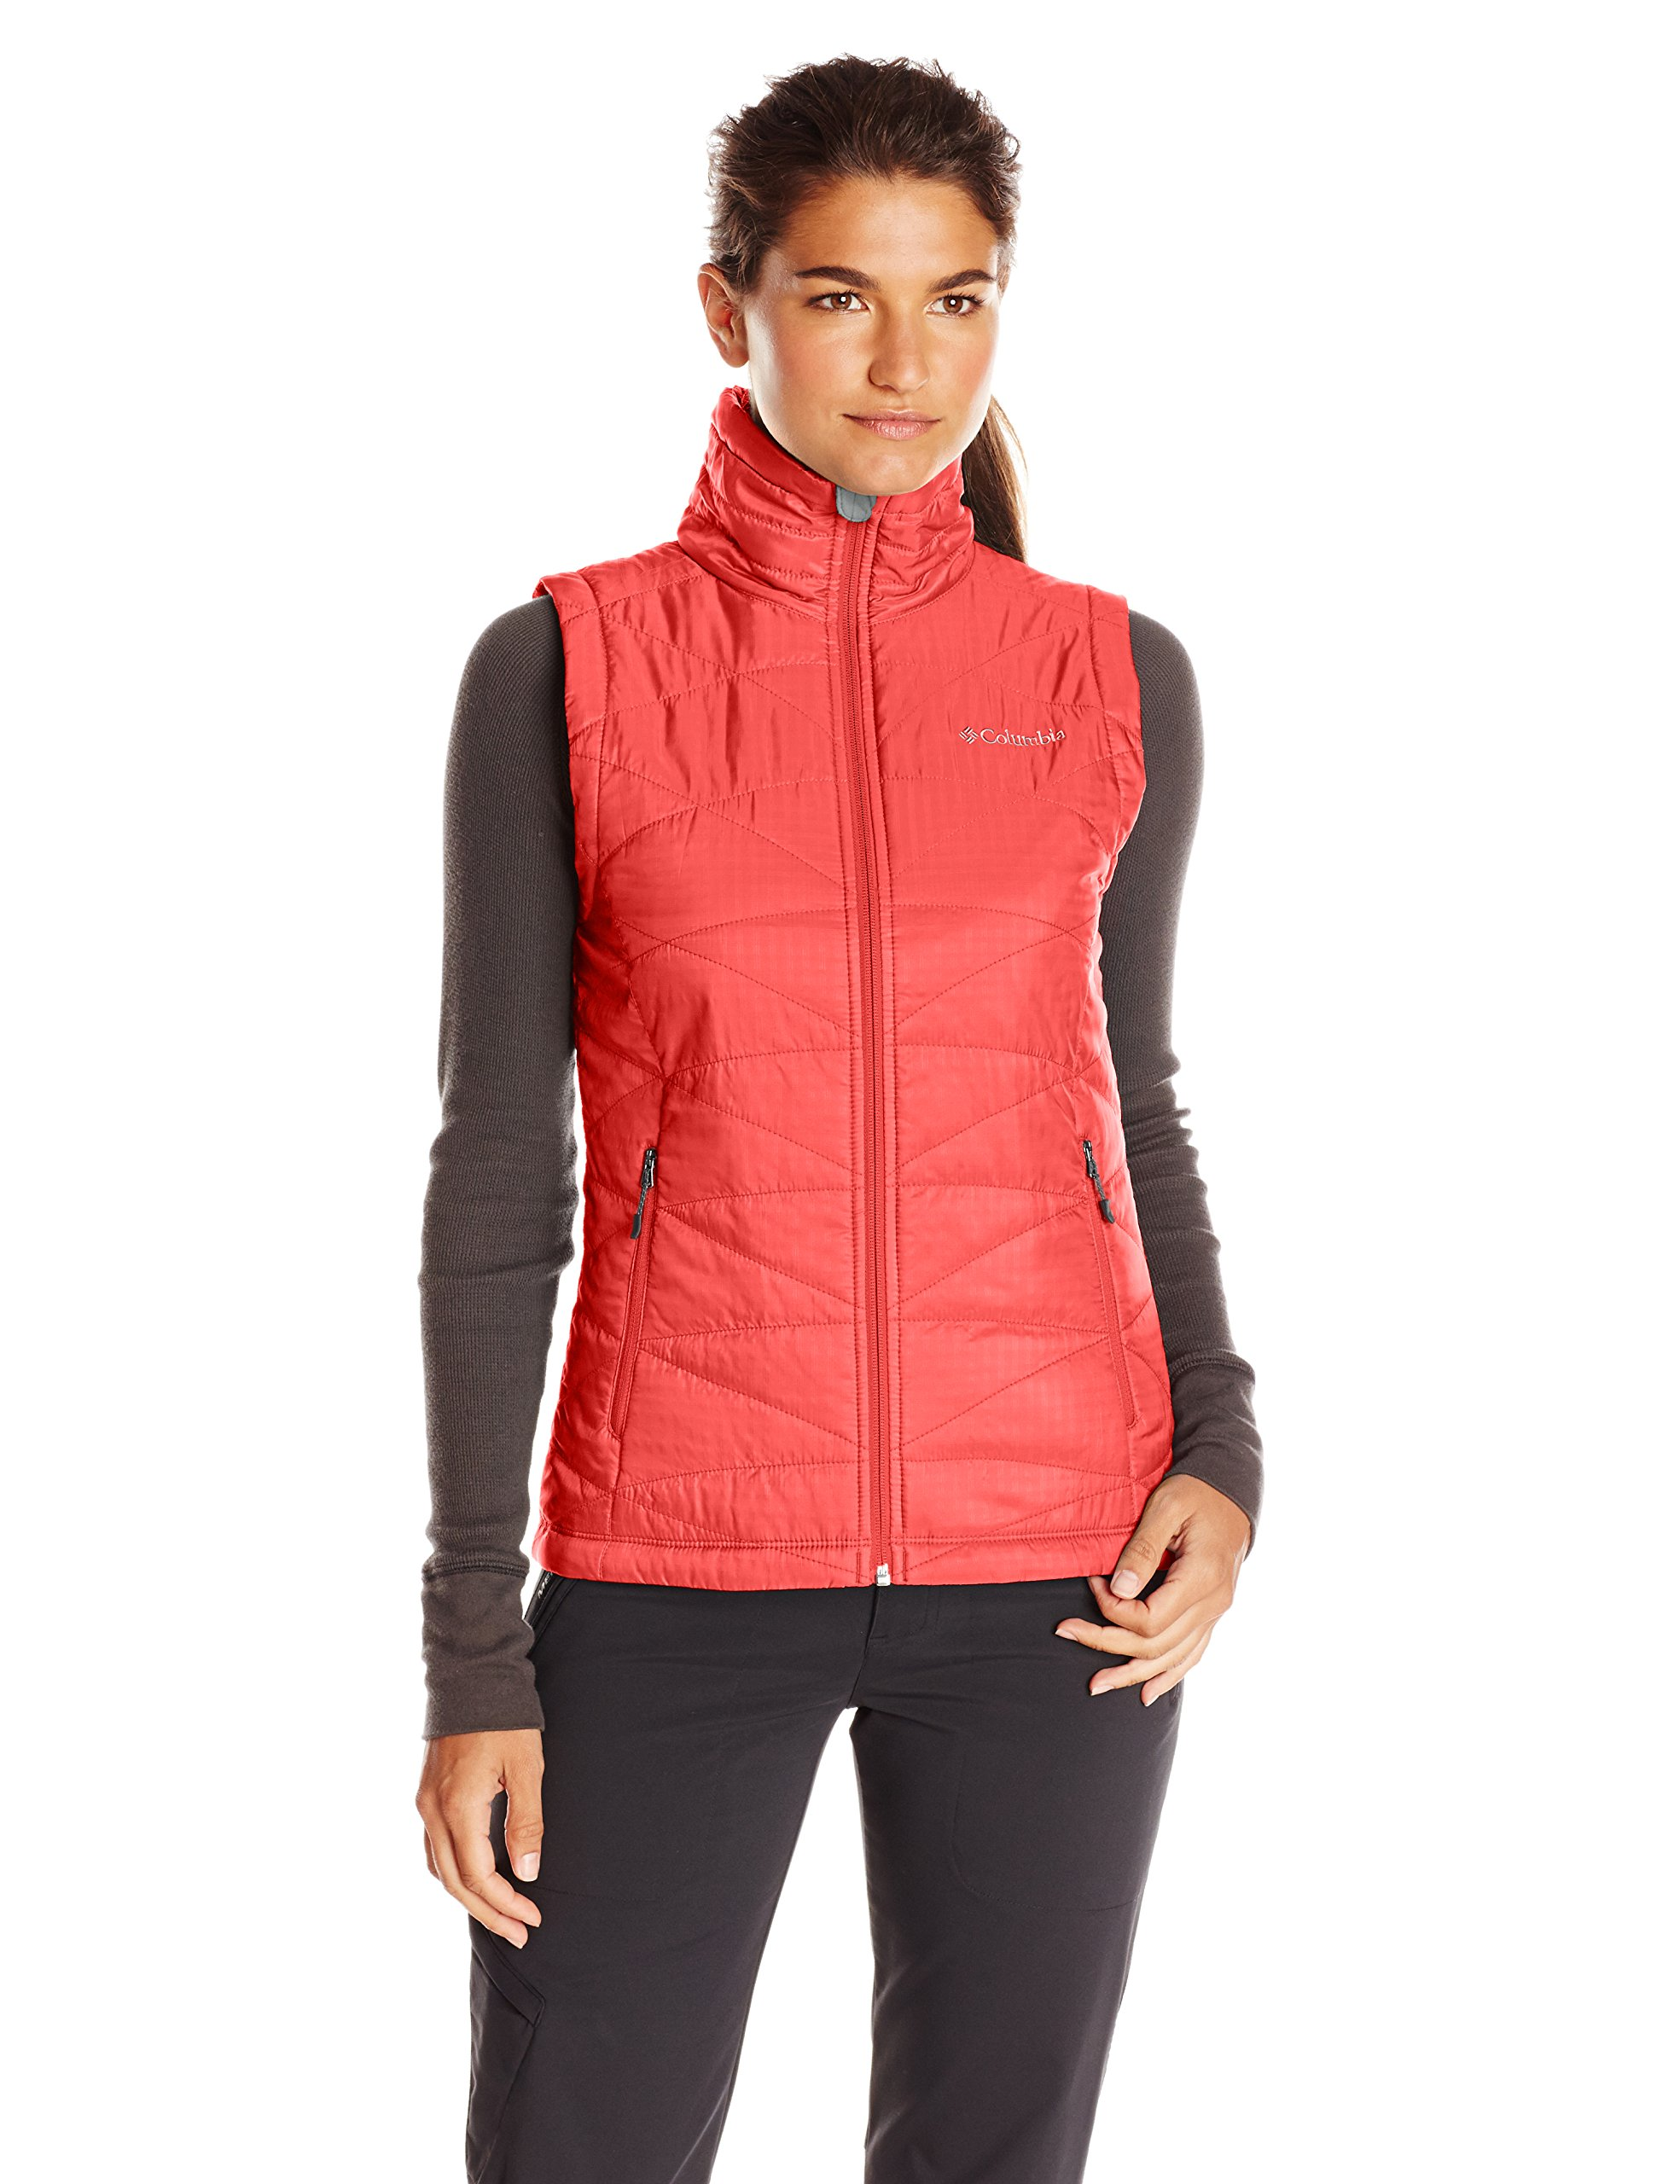 Columbia Women's Mighty Lite III Vest, Red Camellia, Small by Columbia